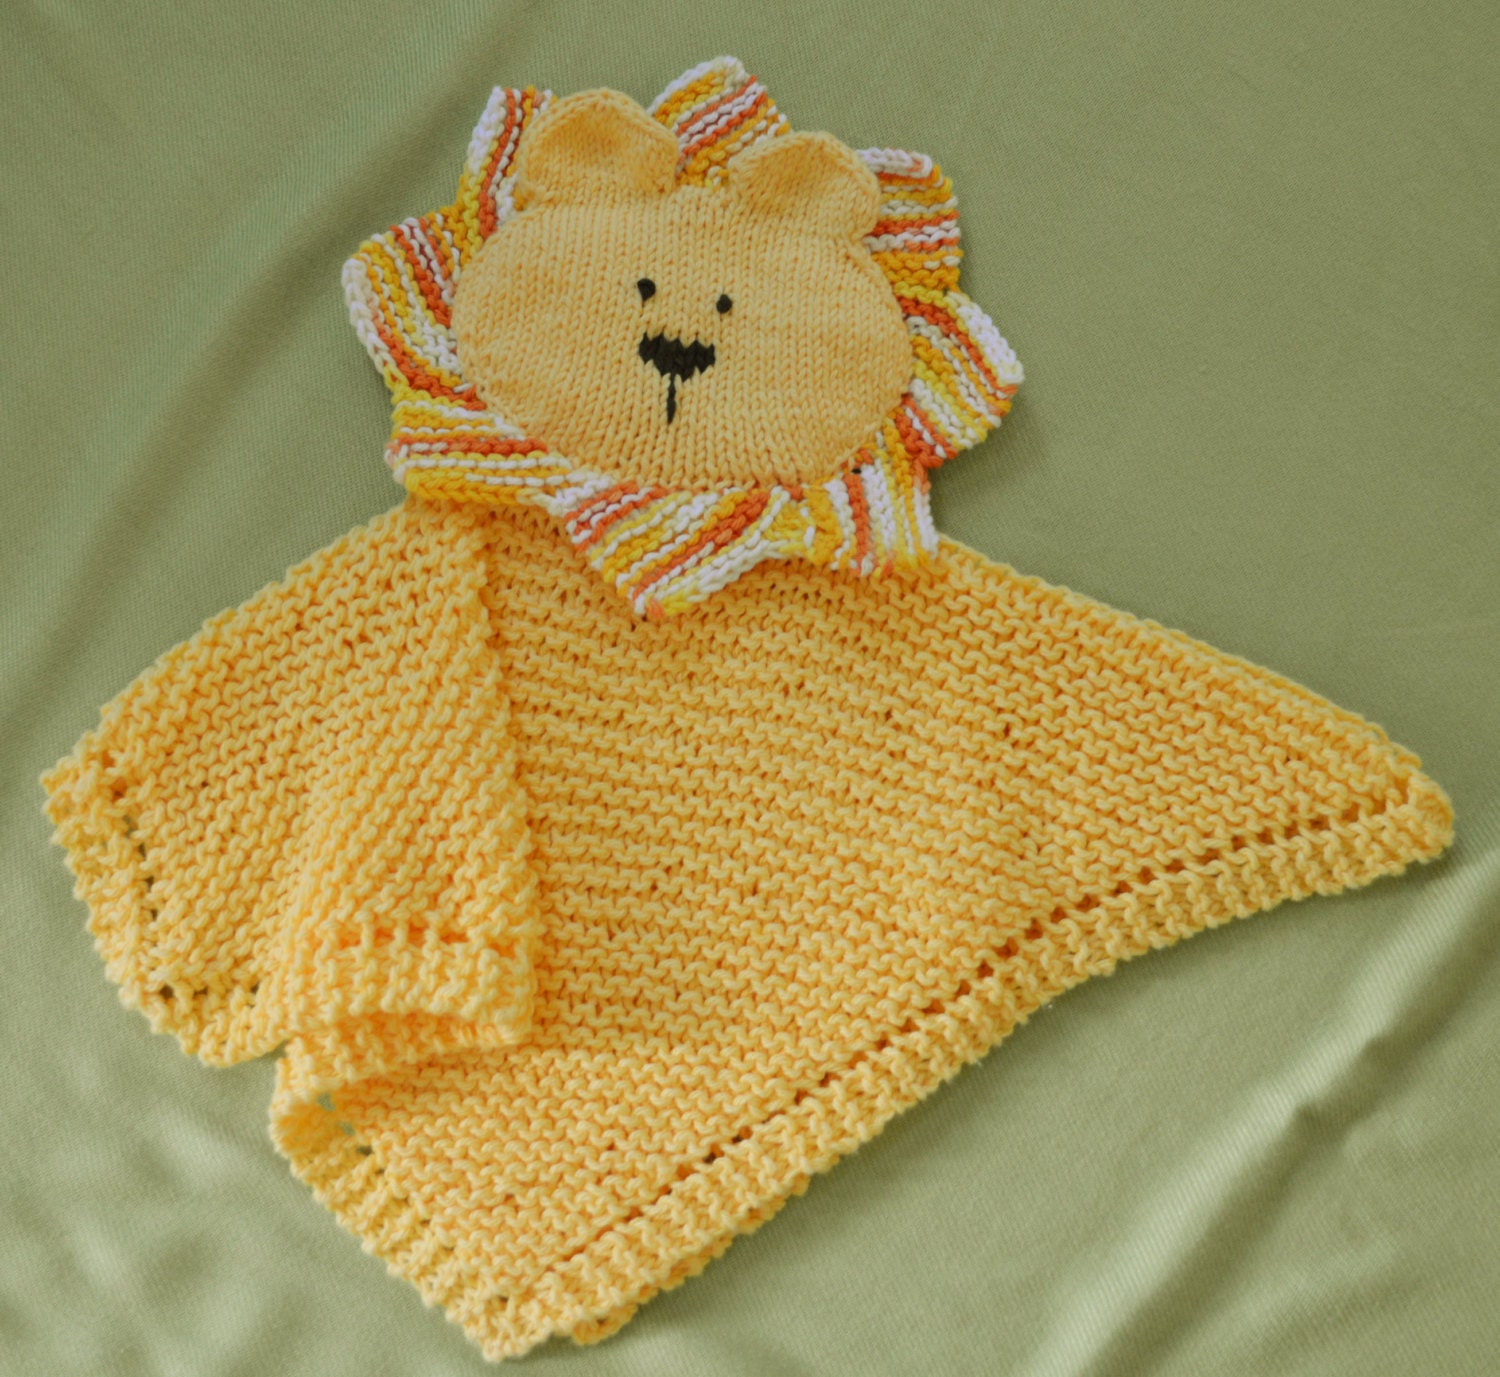 Knitting Patterns For Baby Comfort Blankets : PDF Knitting Pattern HugKnits LION Security blanket Lovey